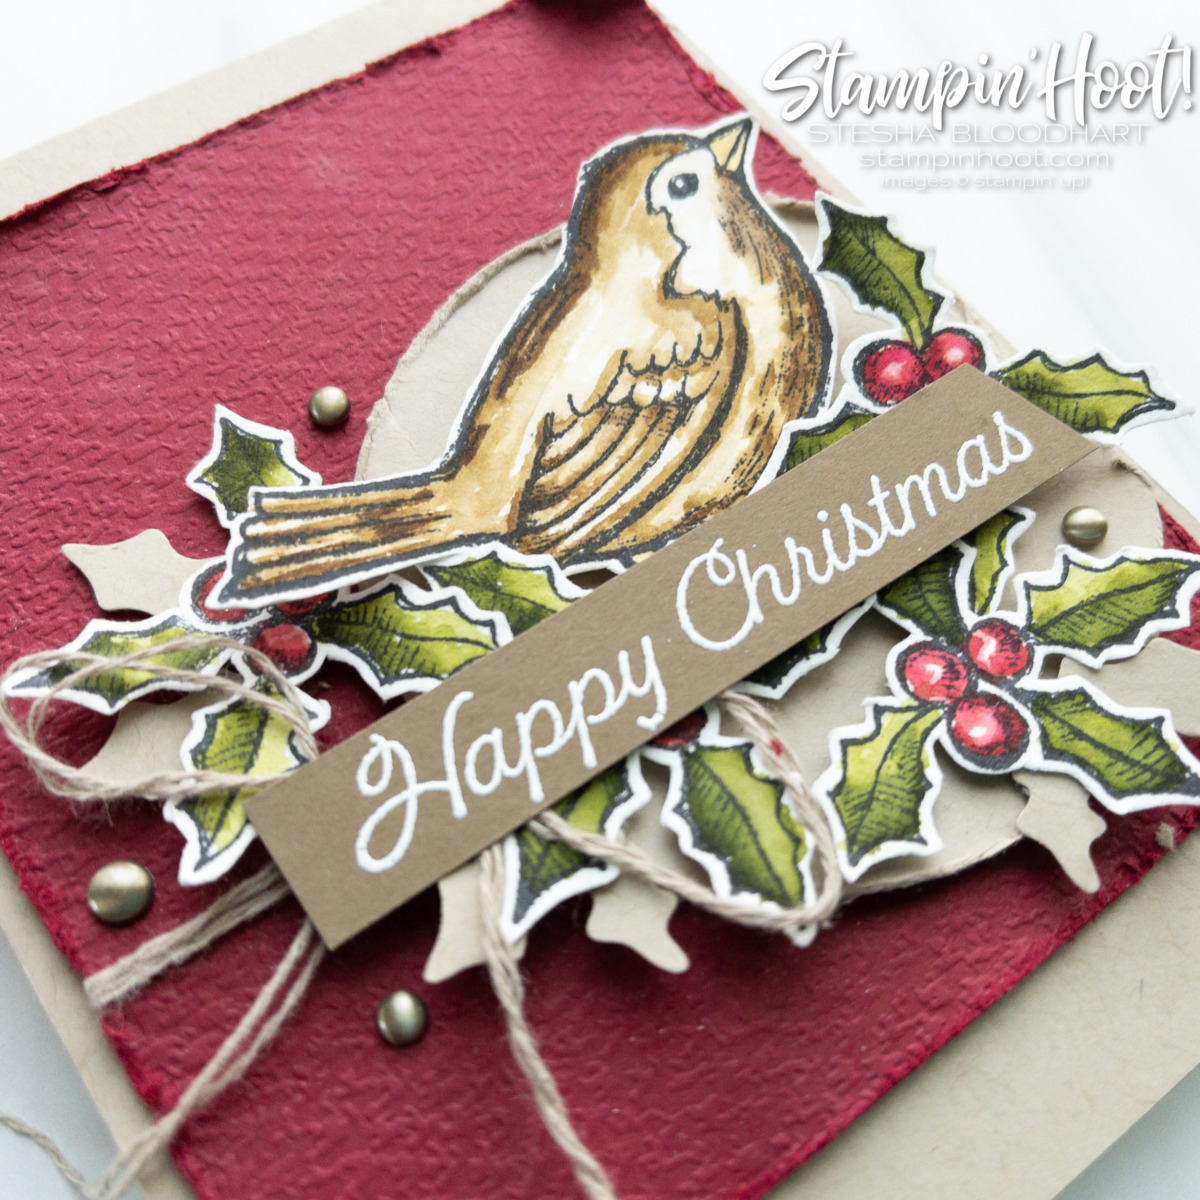 Create this card using the Happy Holly-Days Bundle from Stampin' Up! Card by Stesha Bloodhart Stampin' Hoot #tgifc329 Sketch Crumb Cake